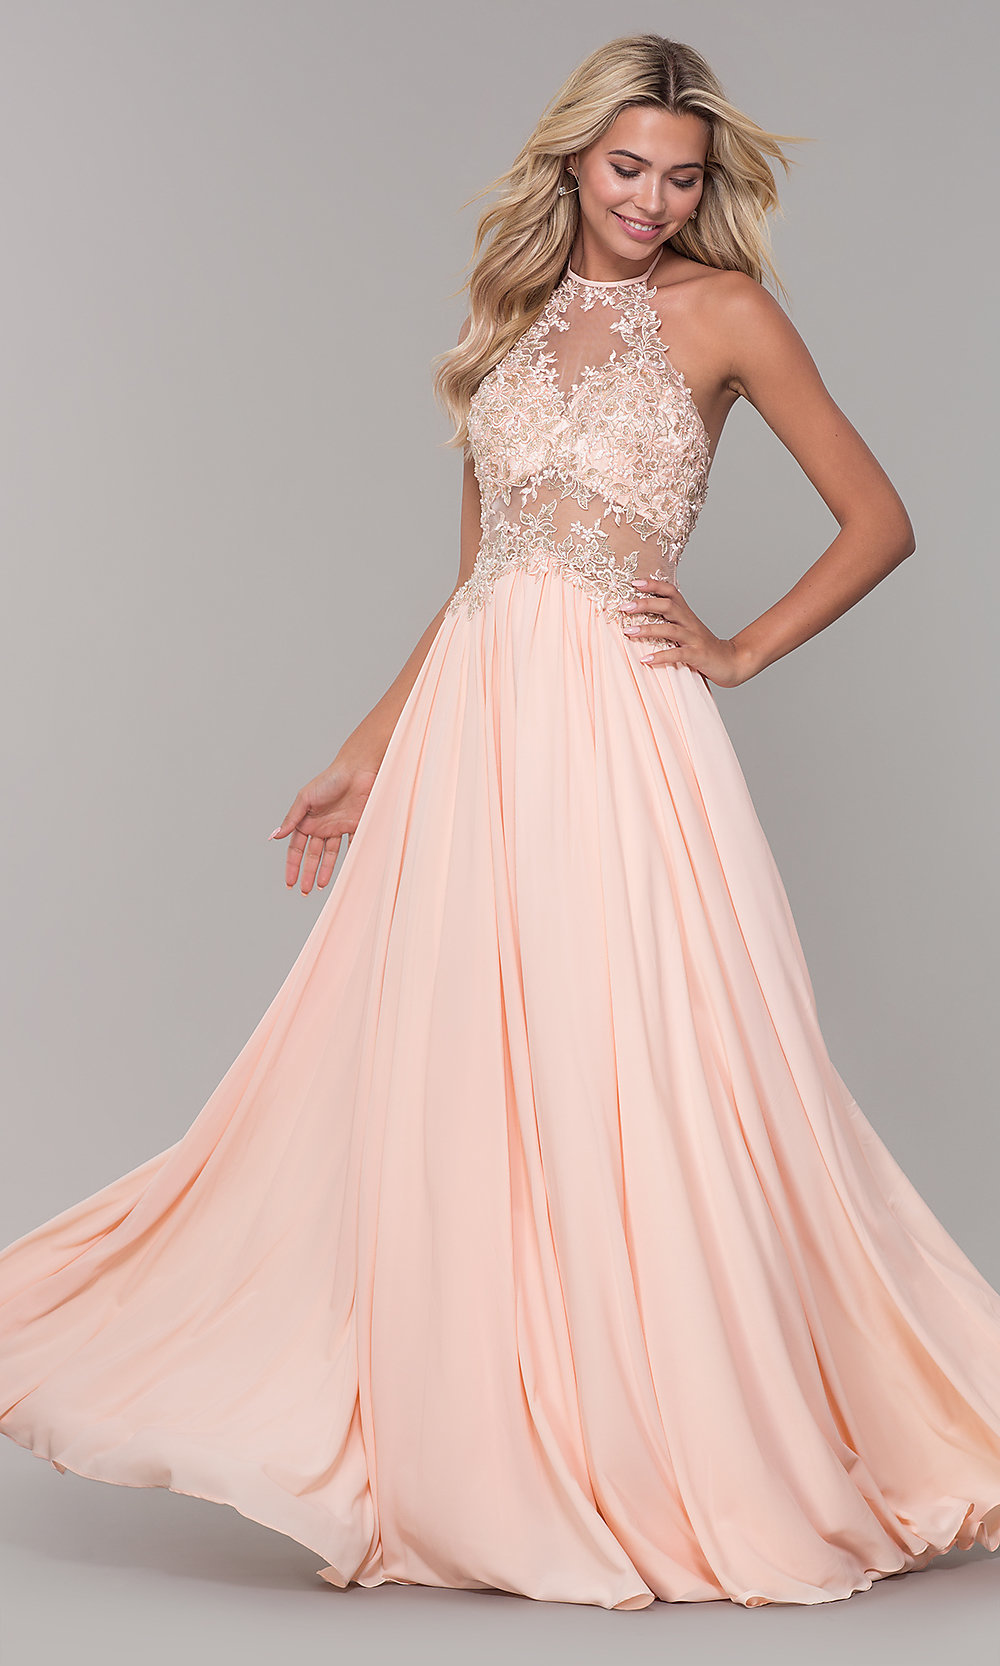 8c025ab62fad Long Peach High-Neck Prom Dress by Dave and Johnny